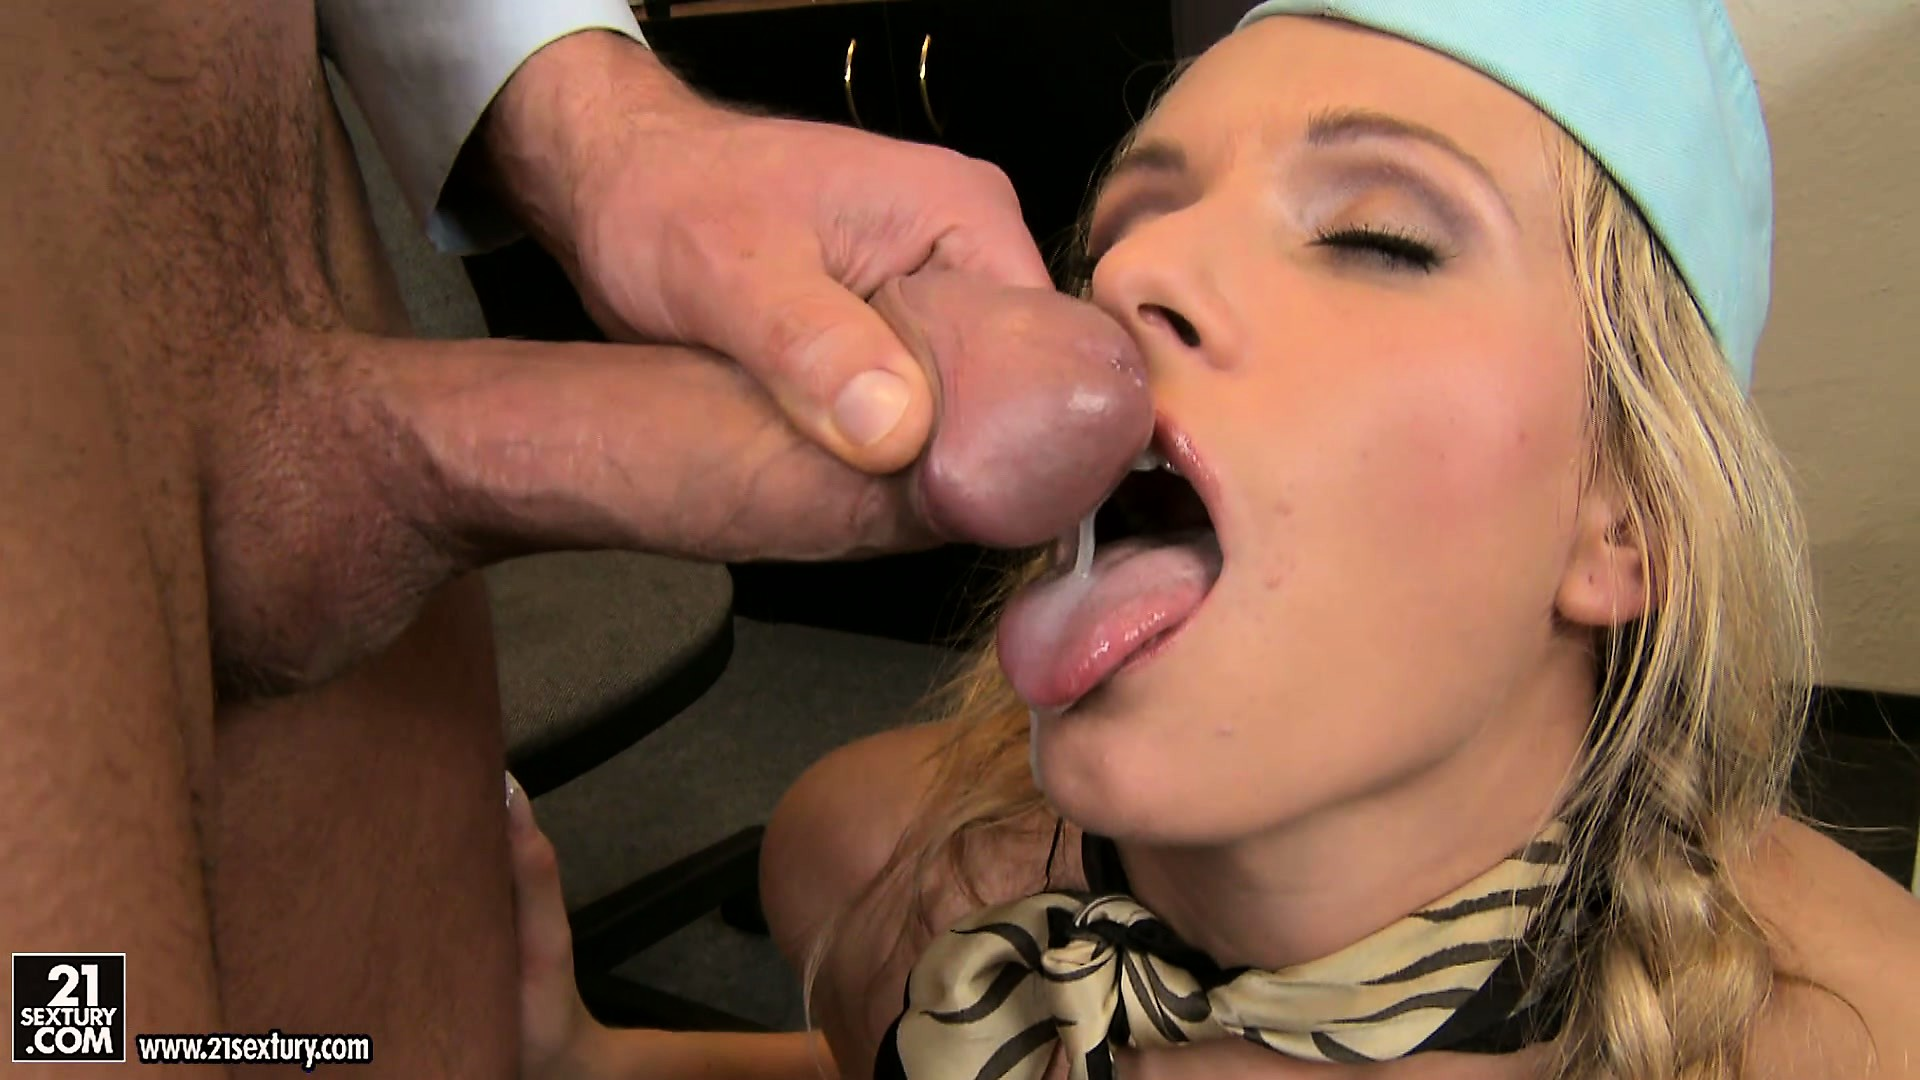 Porno Video of Stewardess Taking A Break From Hard Work On Top Of A Mighty Shlong